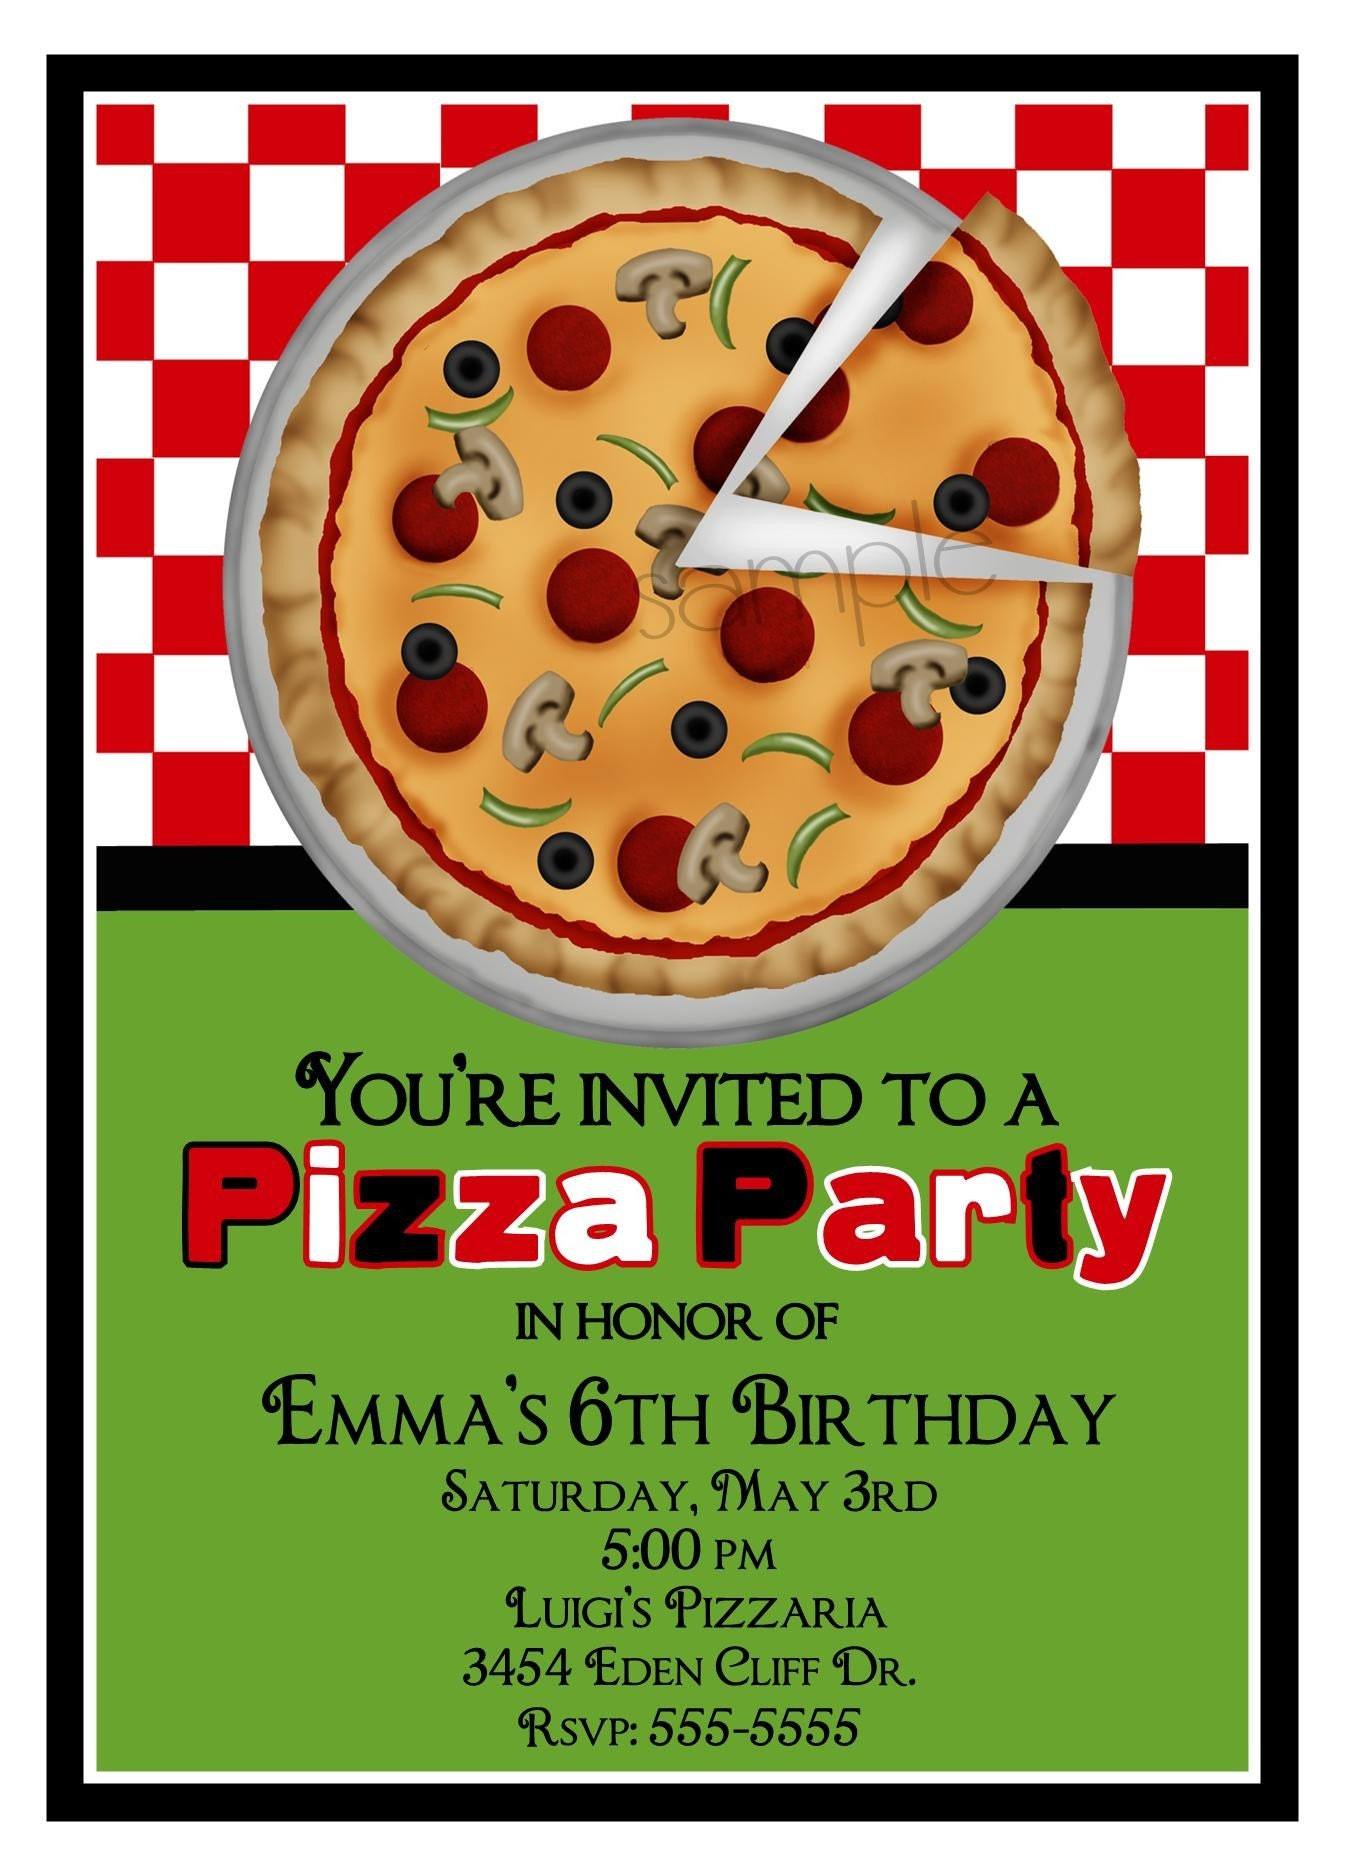 pizza party invitations pizza invites pizza by littlebeaneboutique, Party invitations